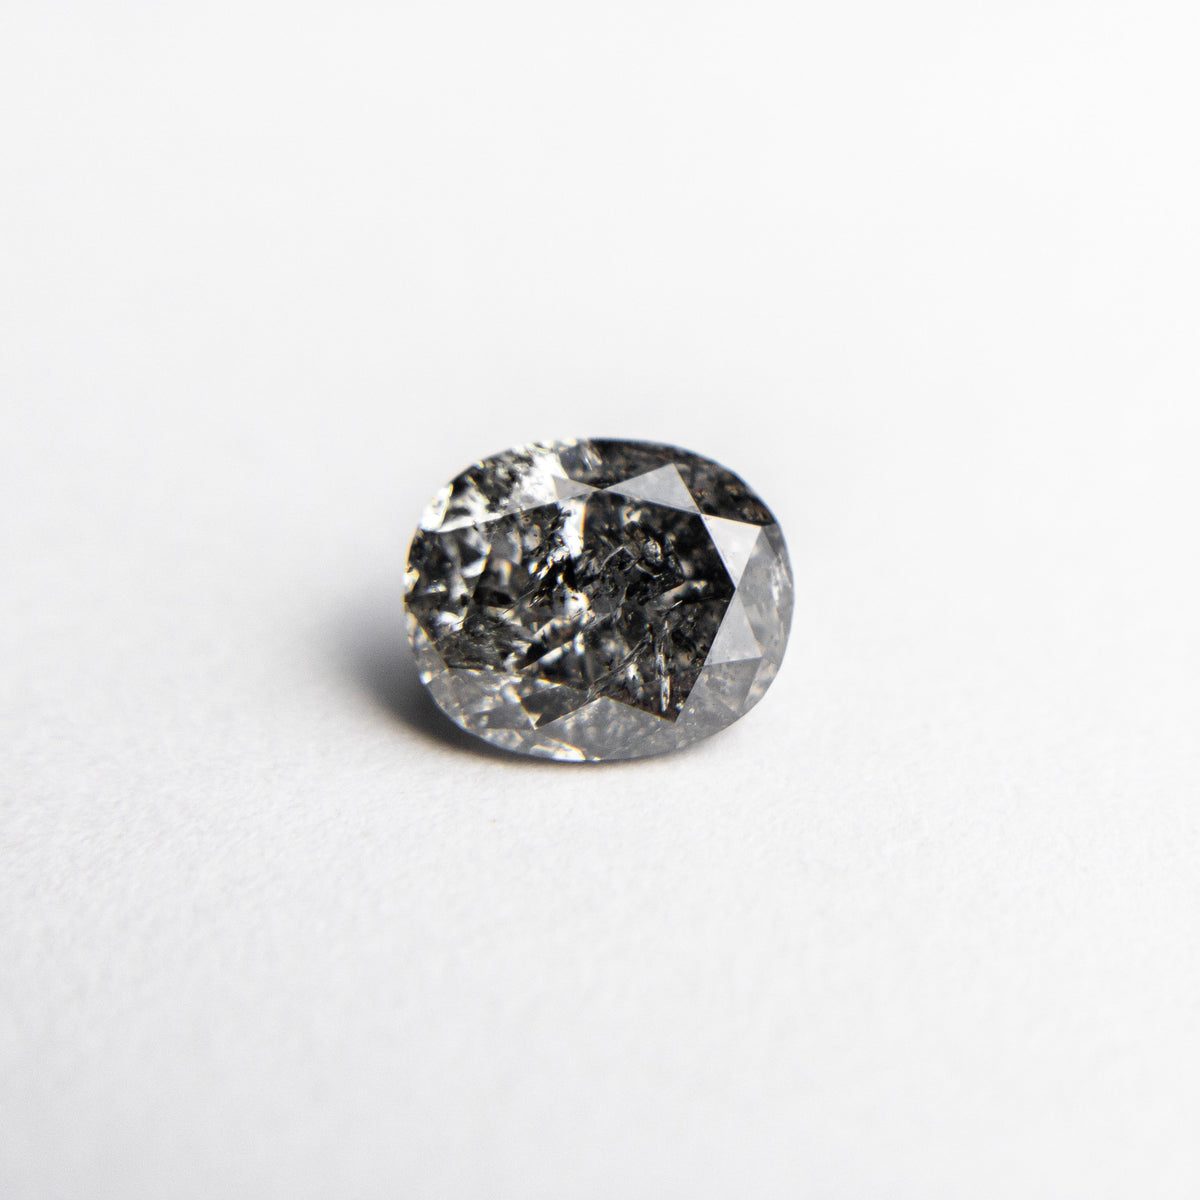 0.72ct 6.04x5.06x3.27mm Oval Brilliant 18453-08